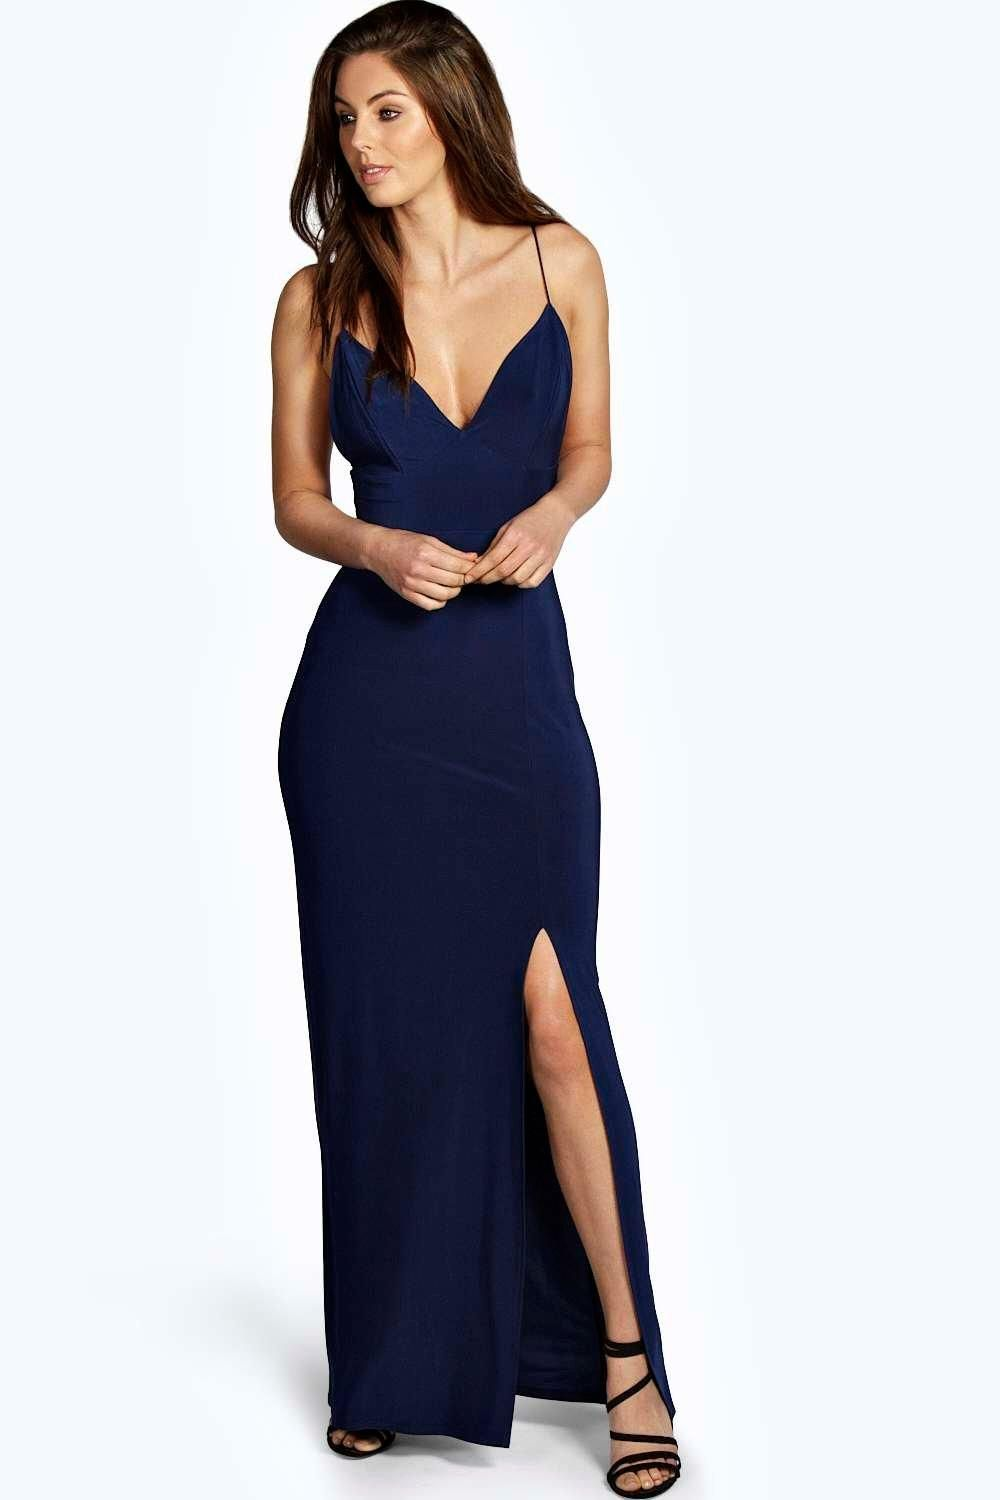 Rhia plunge slinky maxi dress fashion pinterest dresses prom